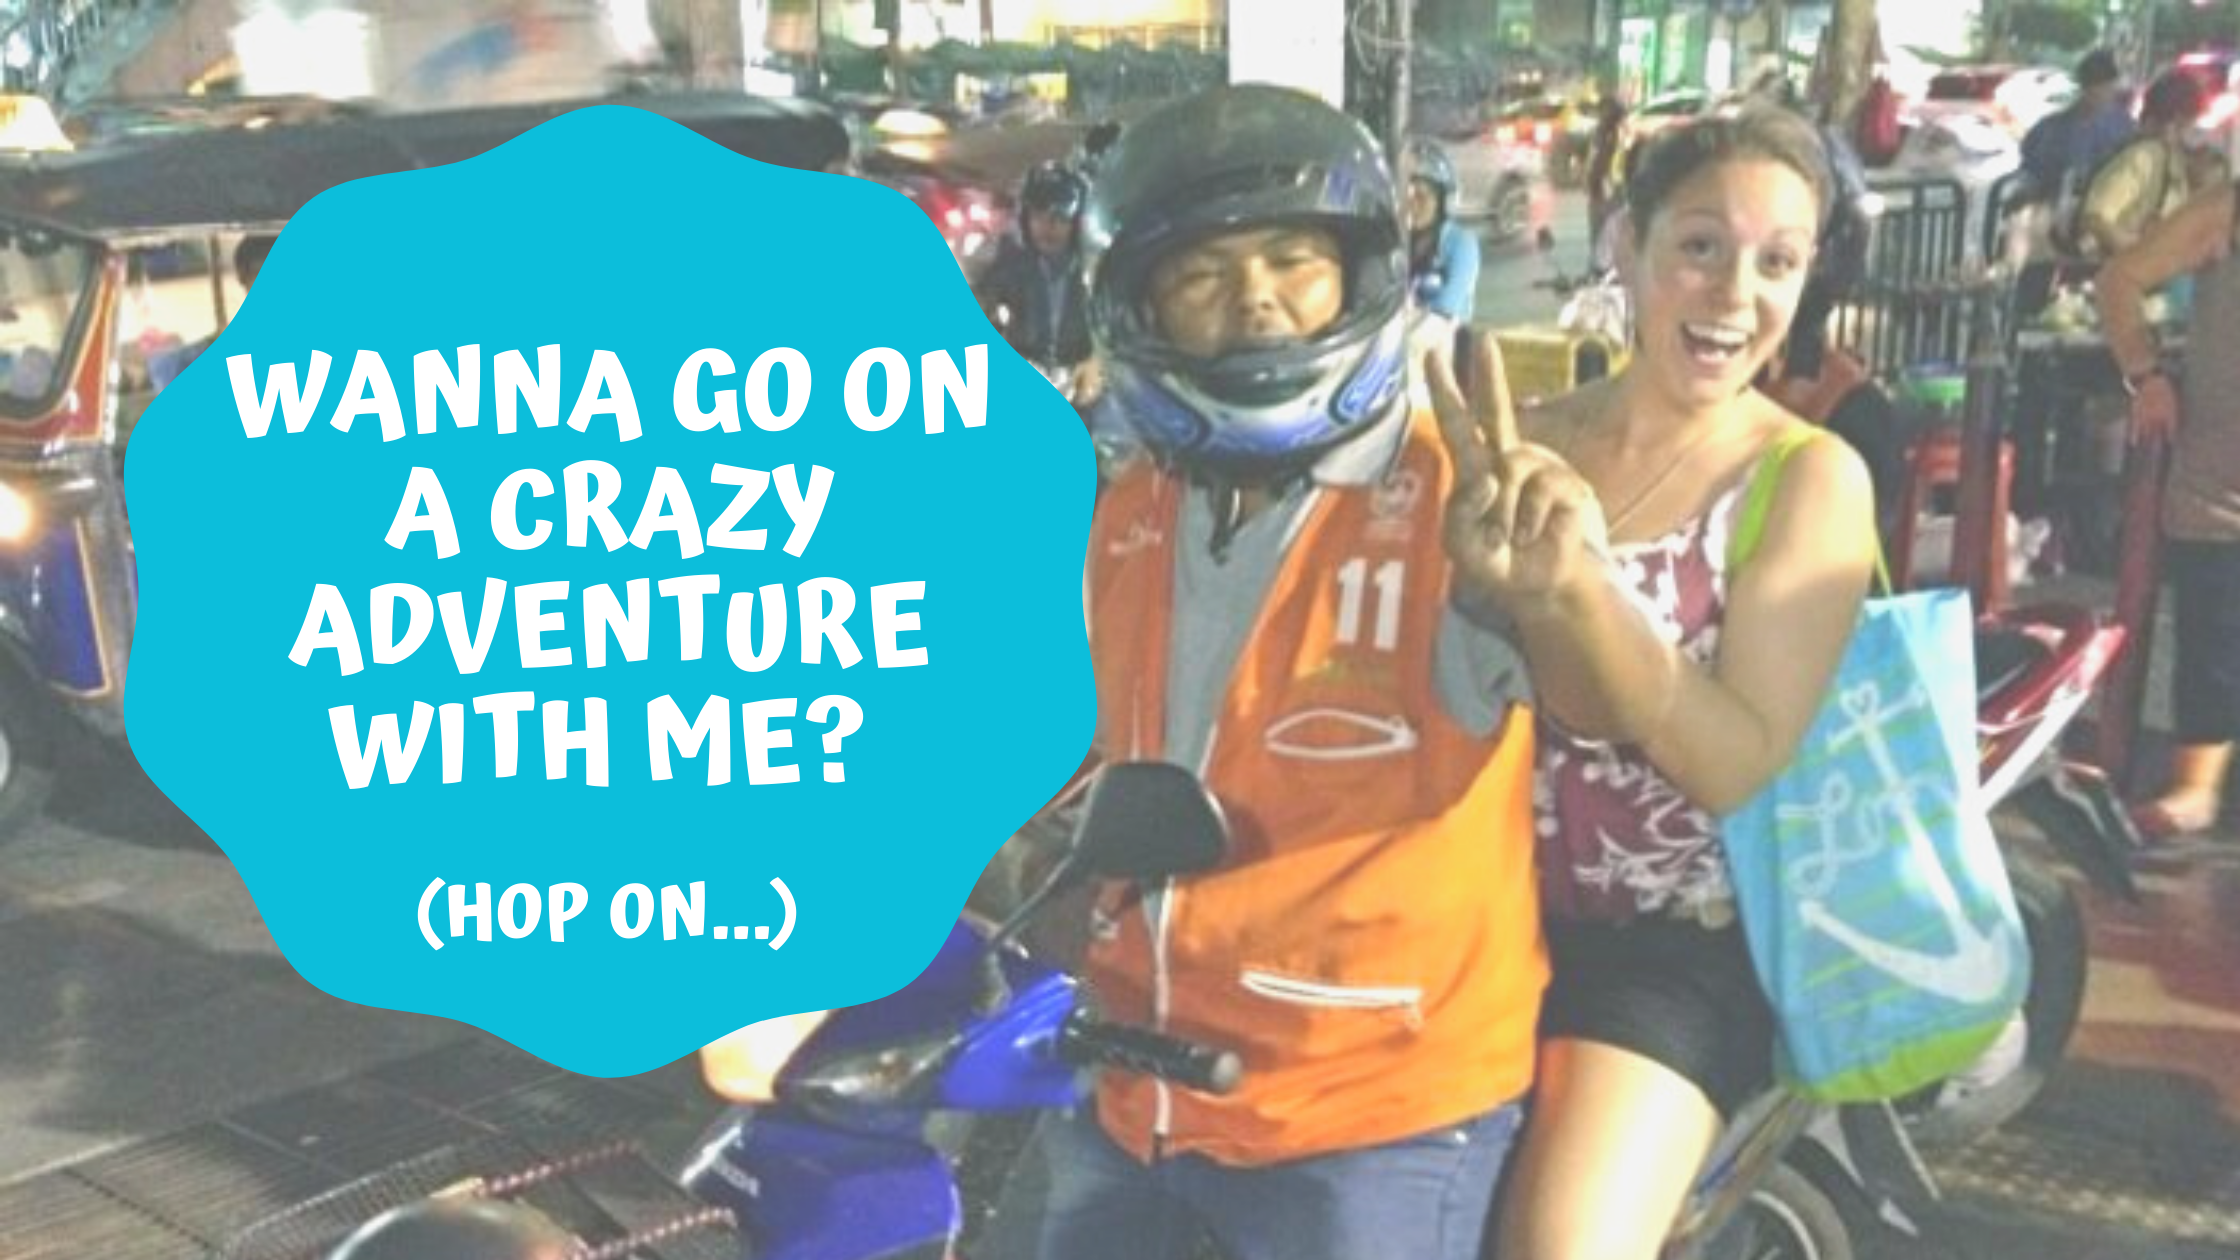 Wanna go on a crazy adventure with me ?